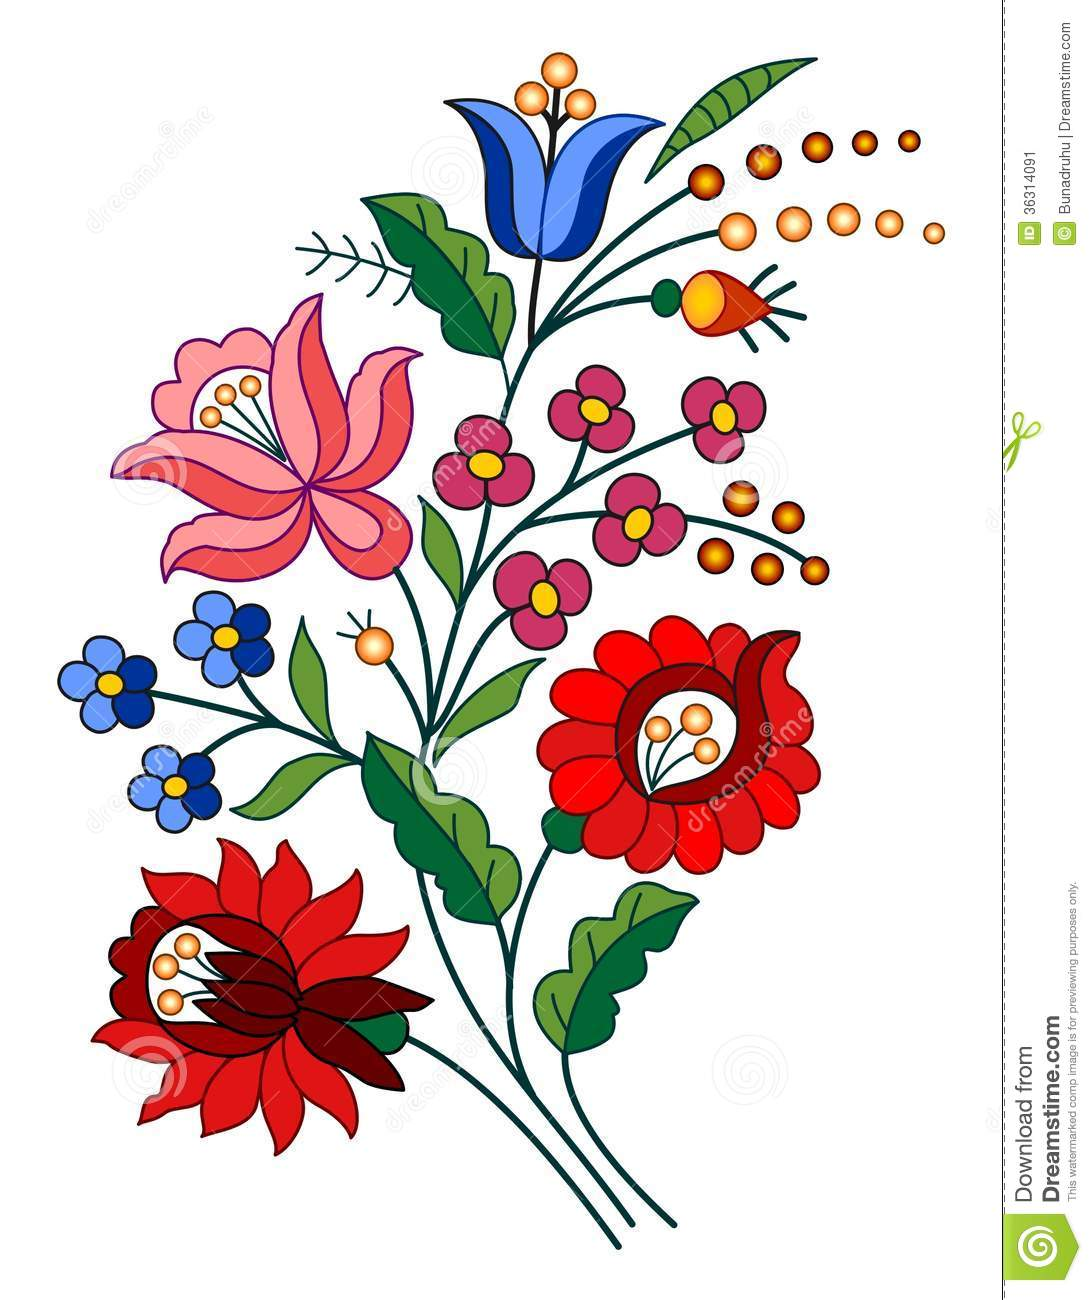 Hungarian folk motif stock vector. Illustration of flower - 36314091